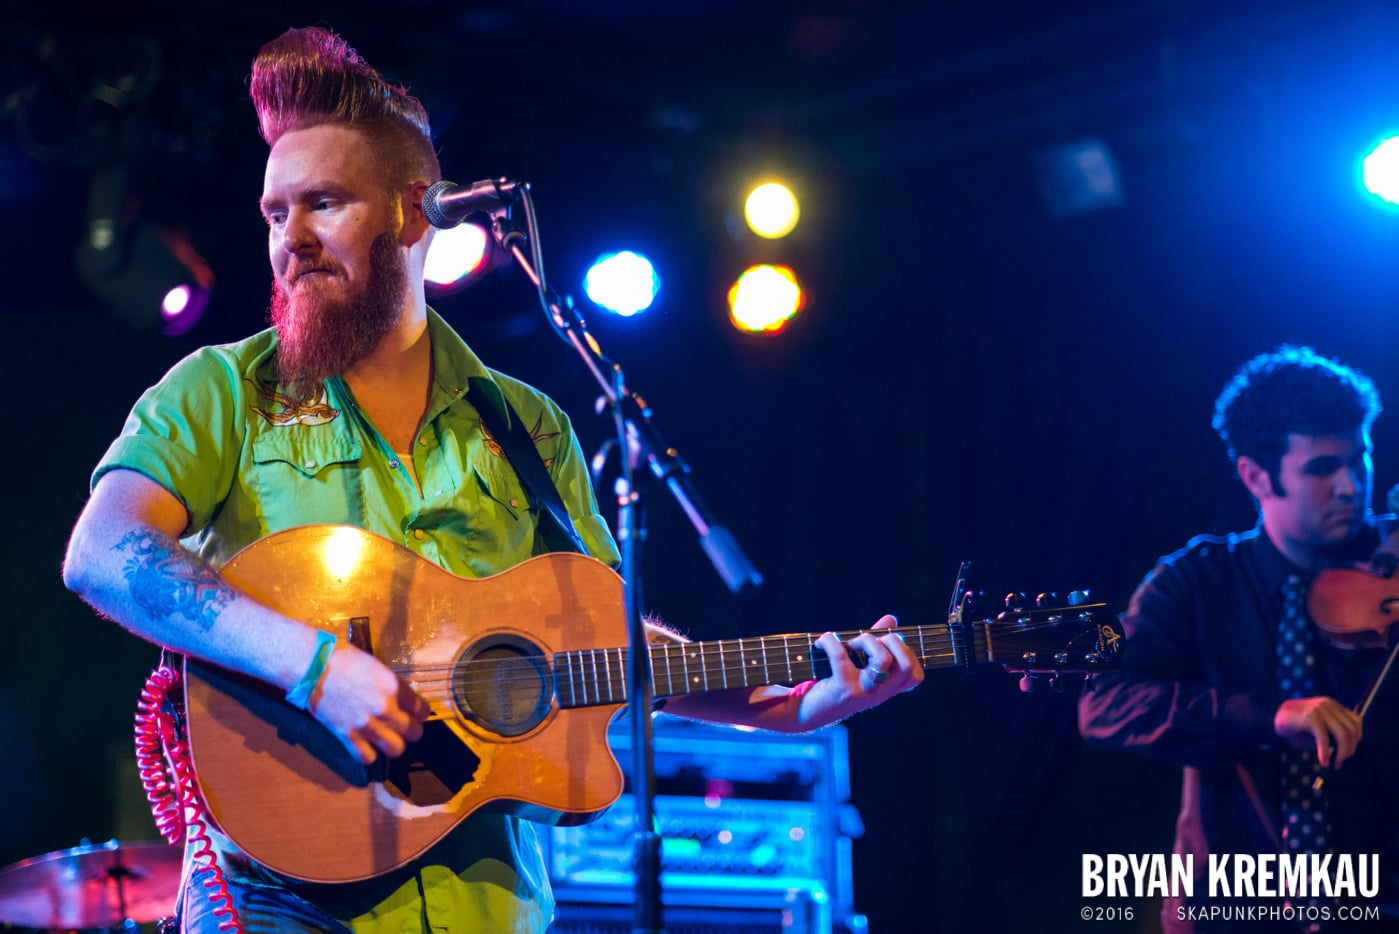 Danny Burns Band @ Knitting Factory, Brooklyn, NY - 9.10.14 (10)